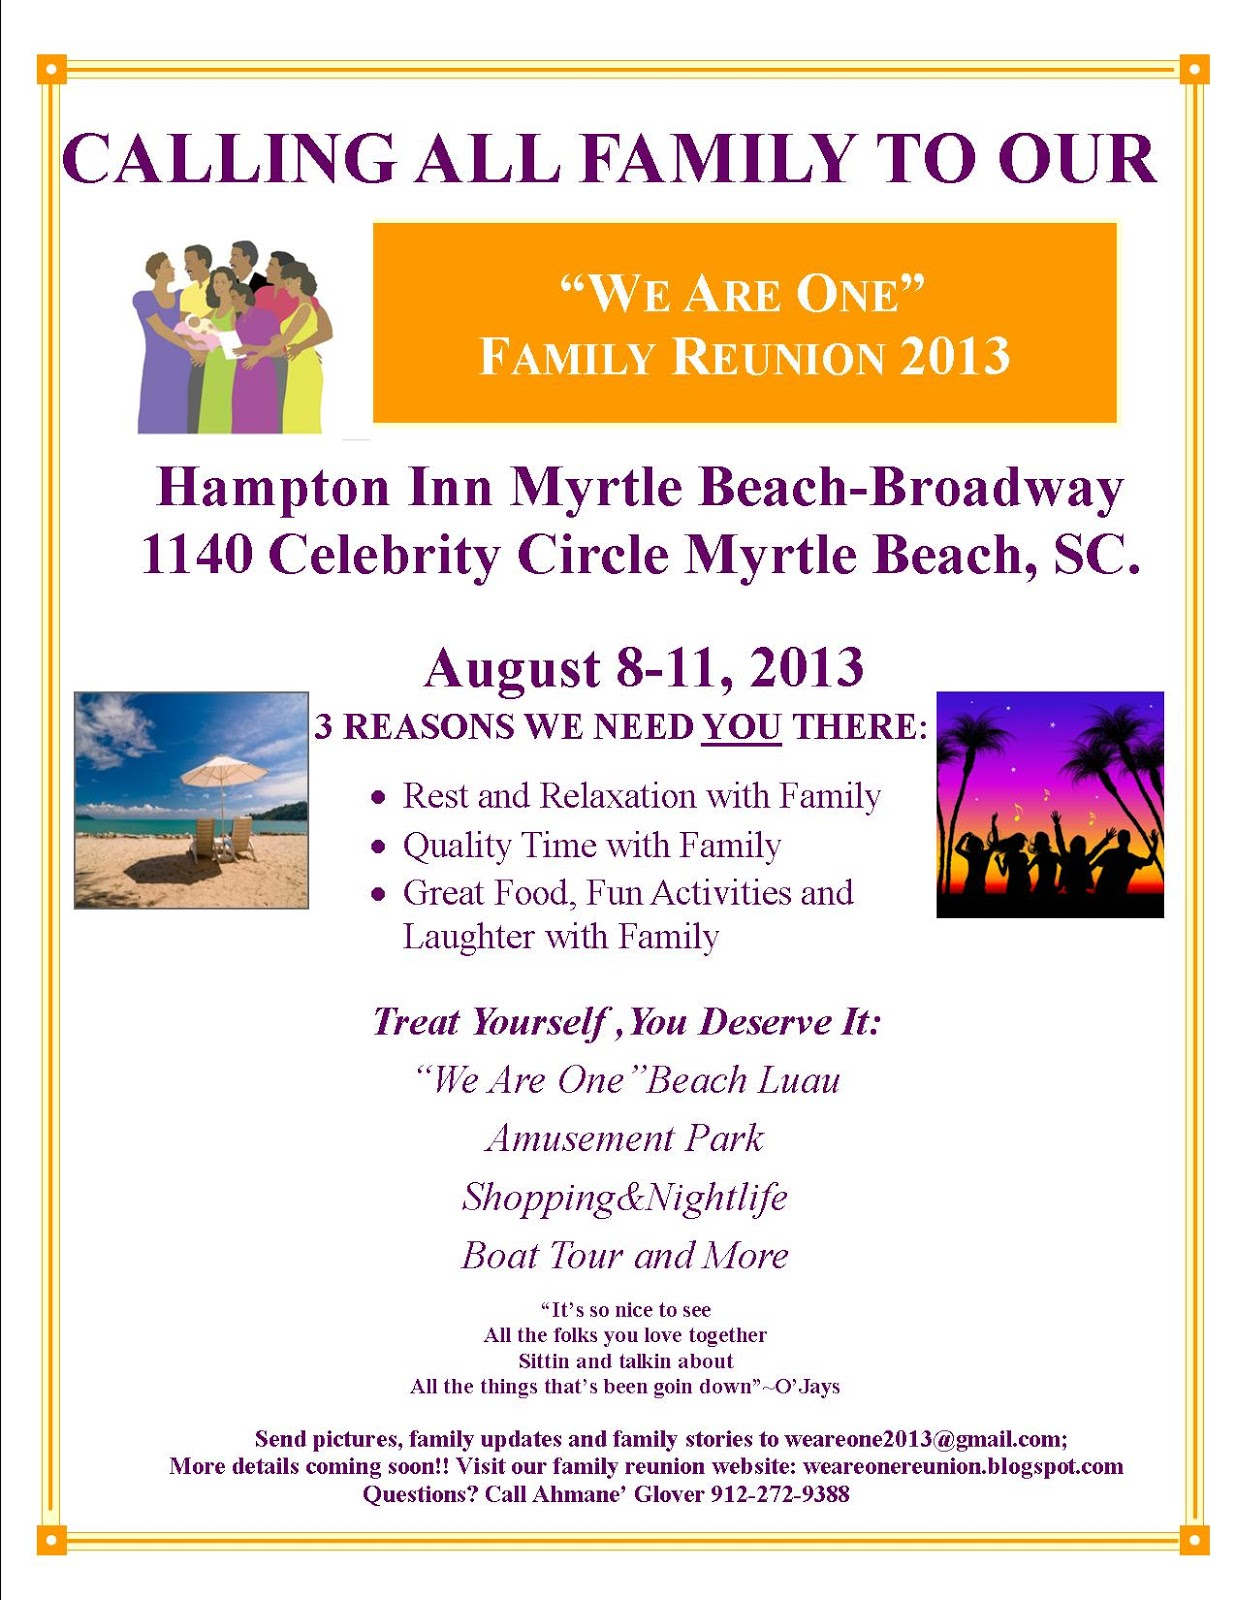 We Are One Family Reunion: Family Reunion Schedule August 8-11, 2013!!